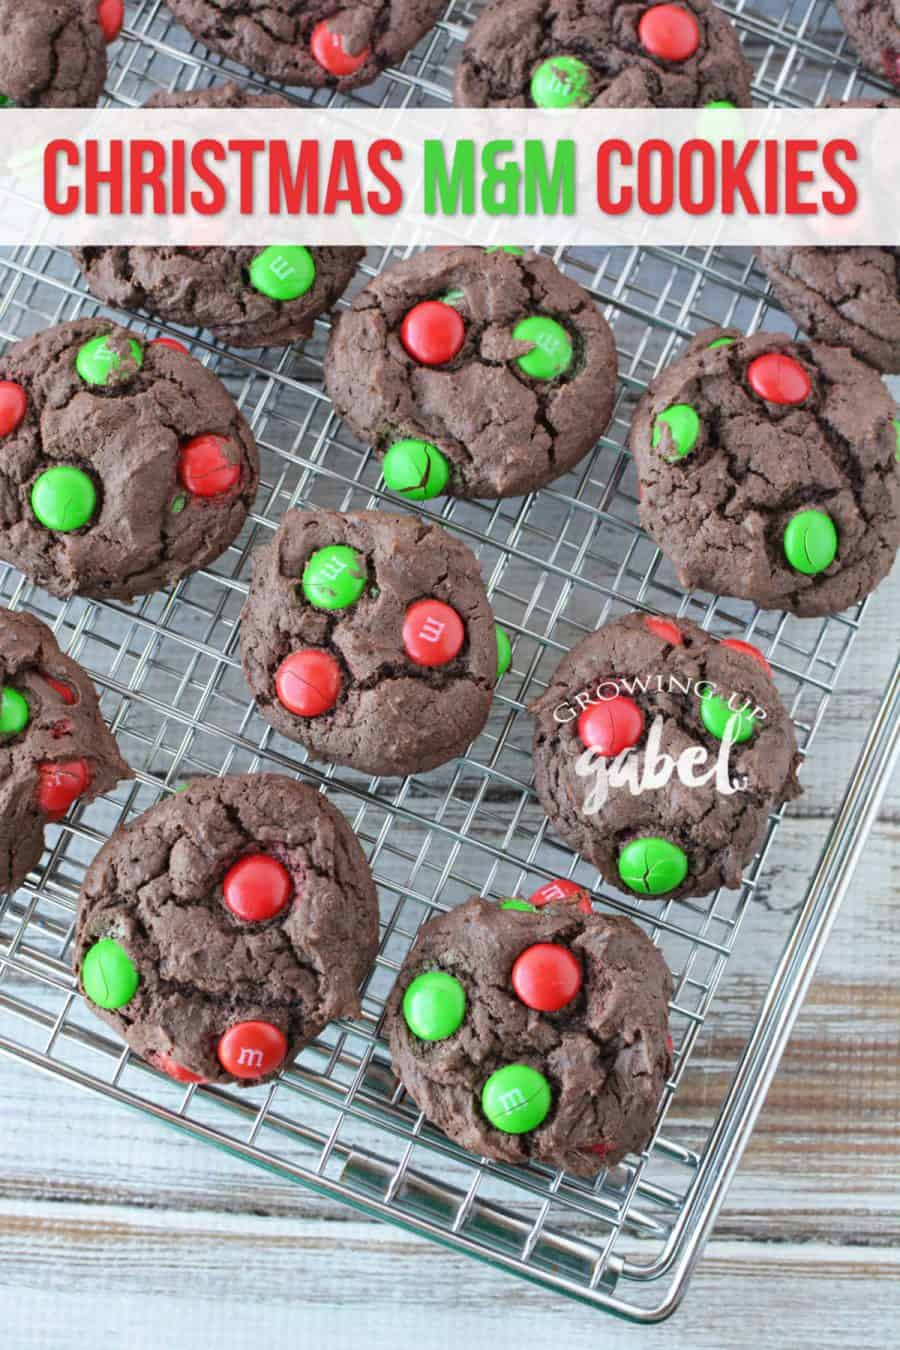 Christmas Cookies Recipes 2019.Christmas M M Cookies Recipes